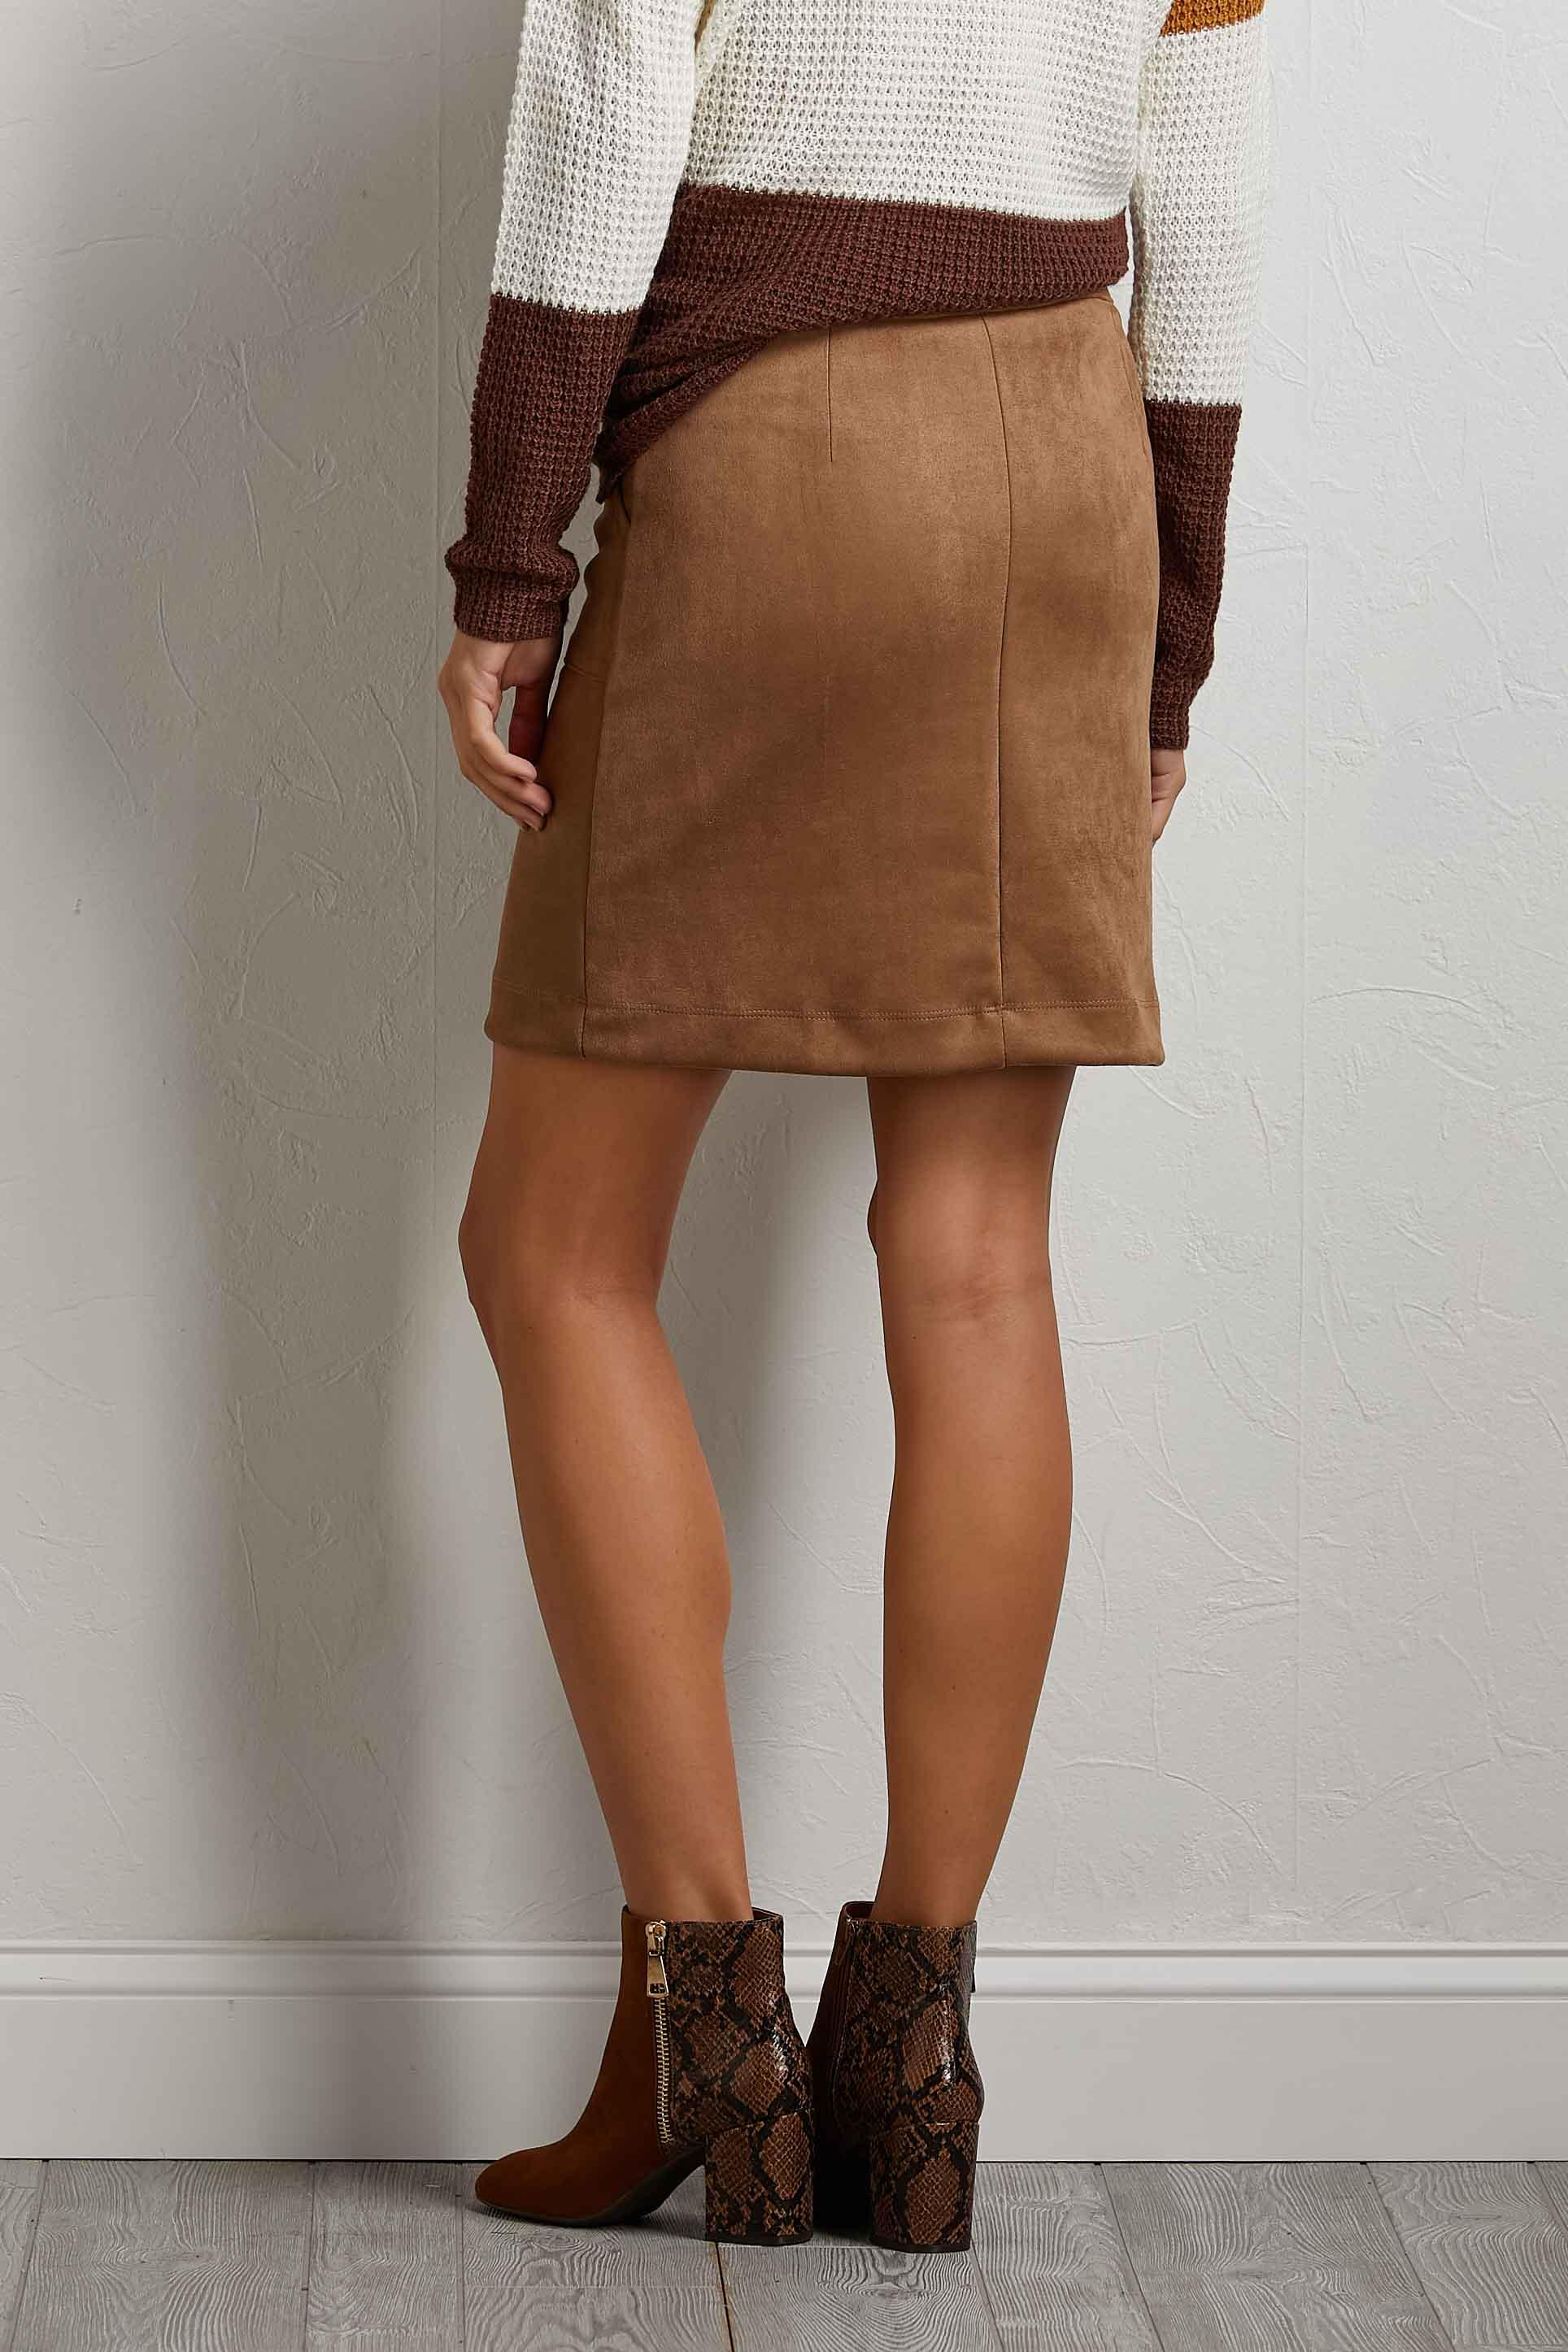 Iced Coffee Mini Skirt